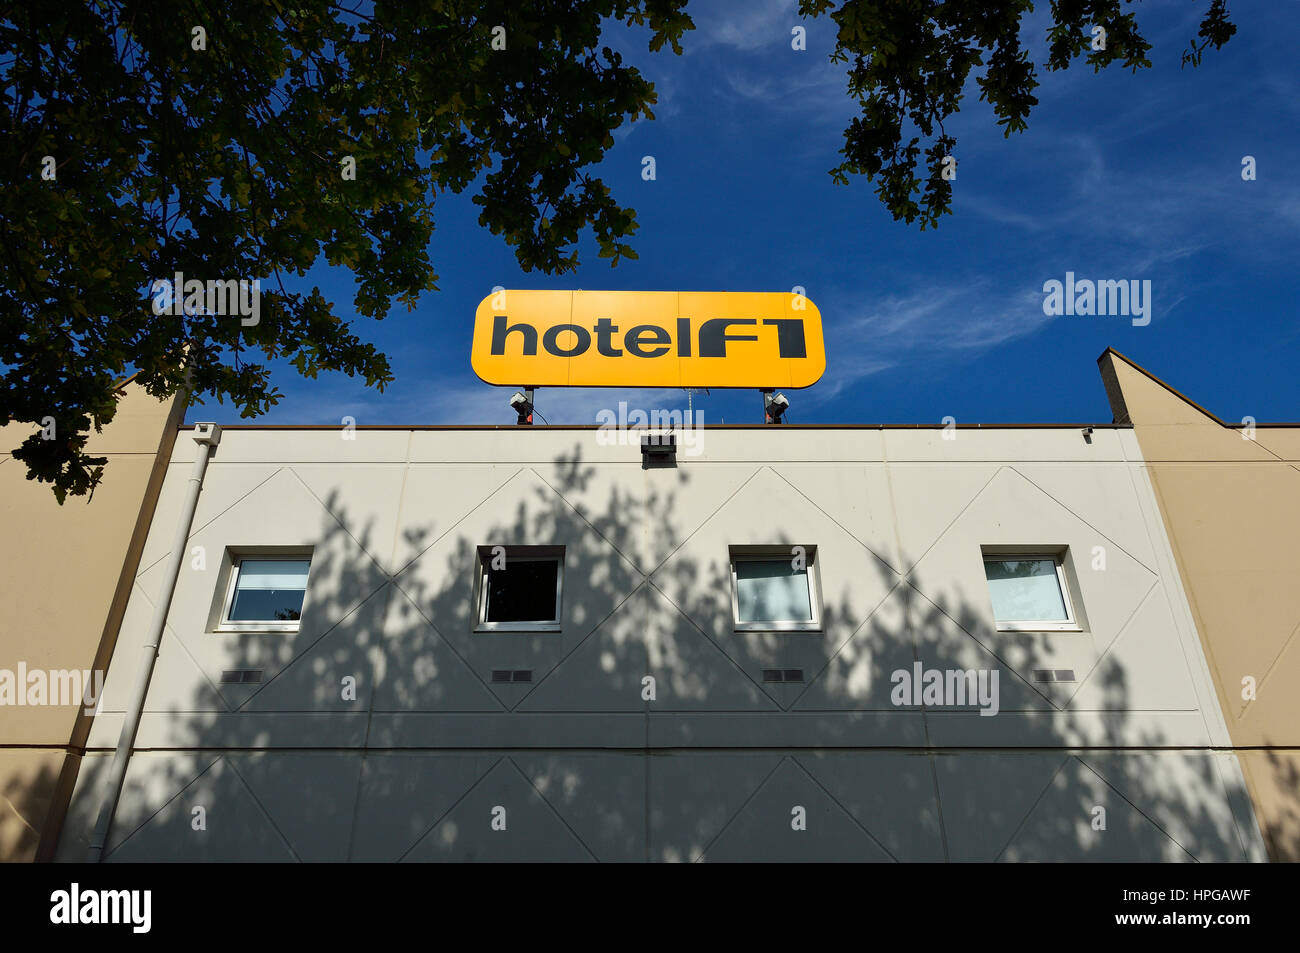 France, Formule 1 Hotel facade and its sign against a blue sky. Foliage in the foreground - Stock Image